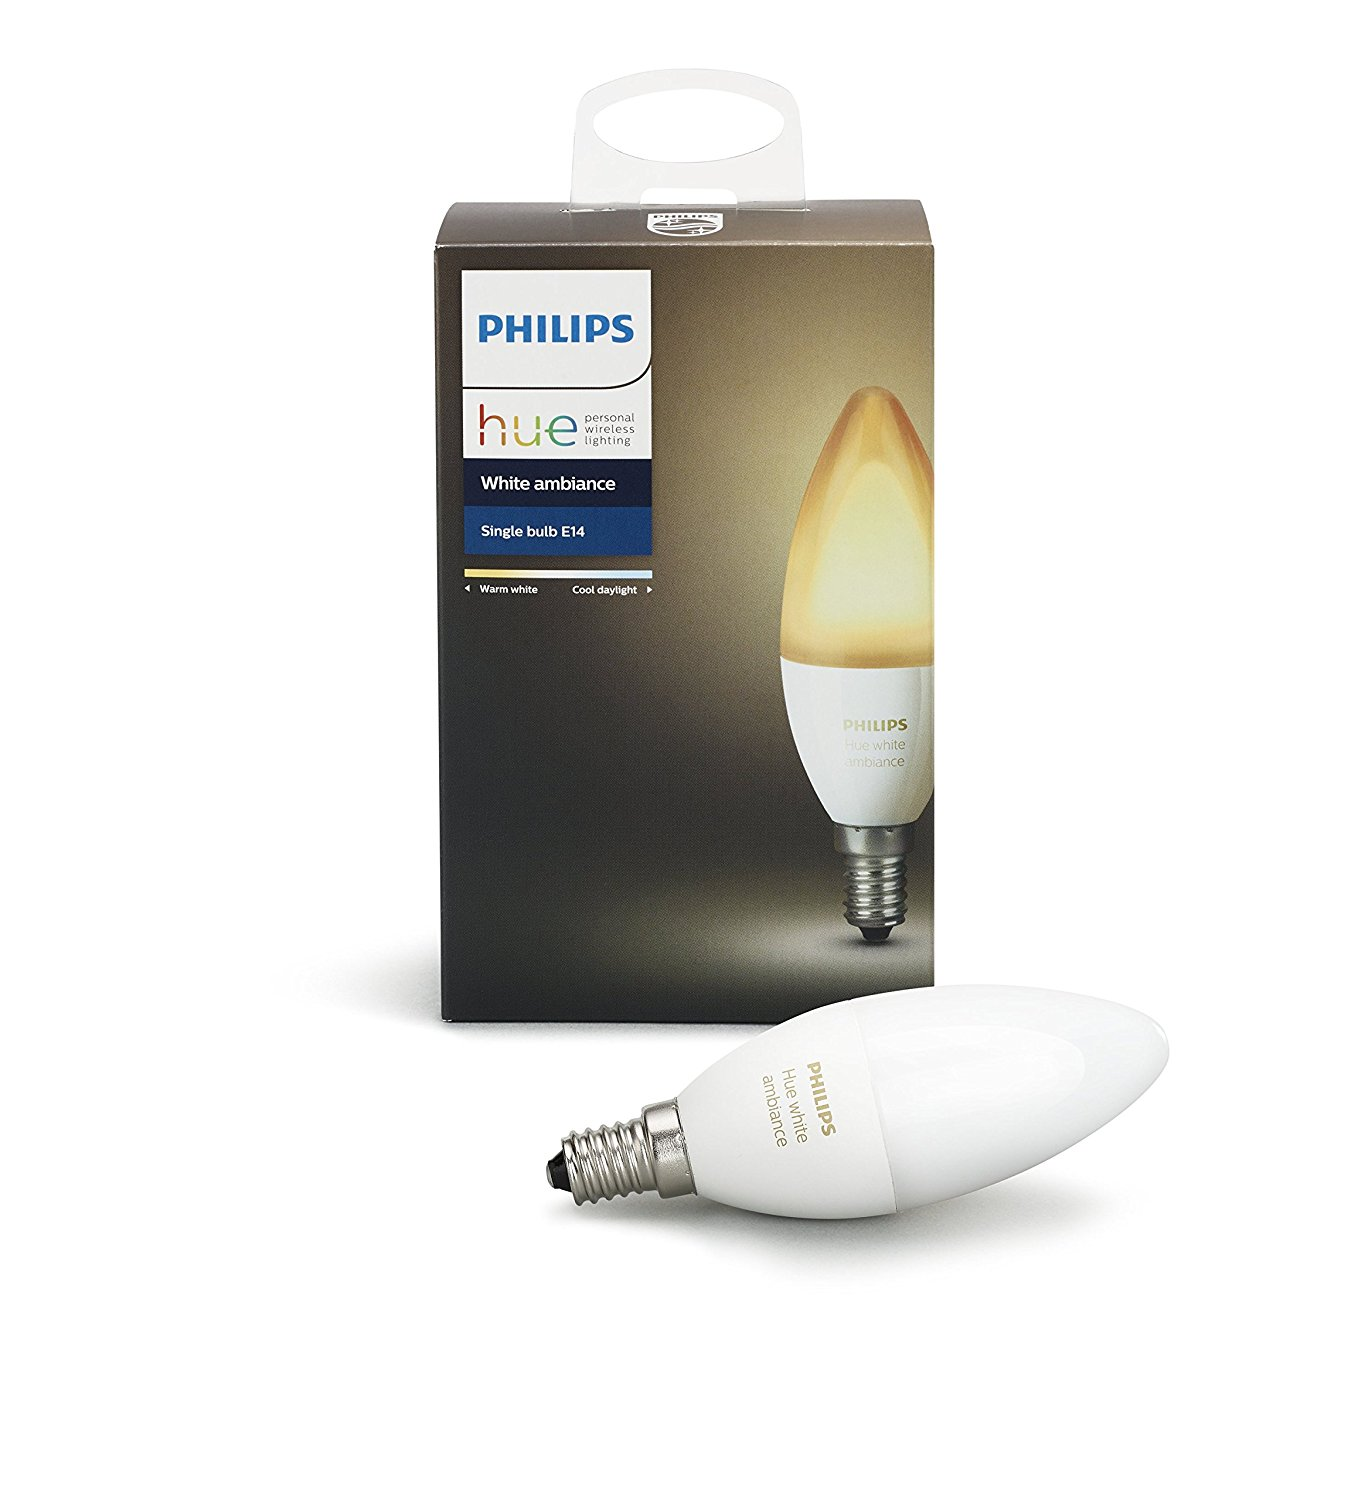 Philips Hue White Ambiance E12 Decorative Candle 40W Equivalent Dimmable LED Smart Bulb